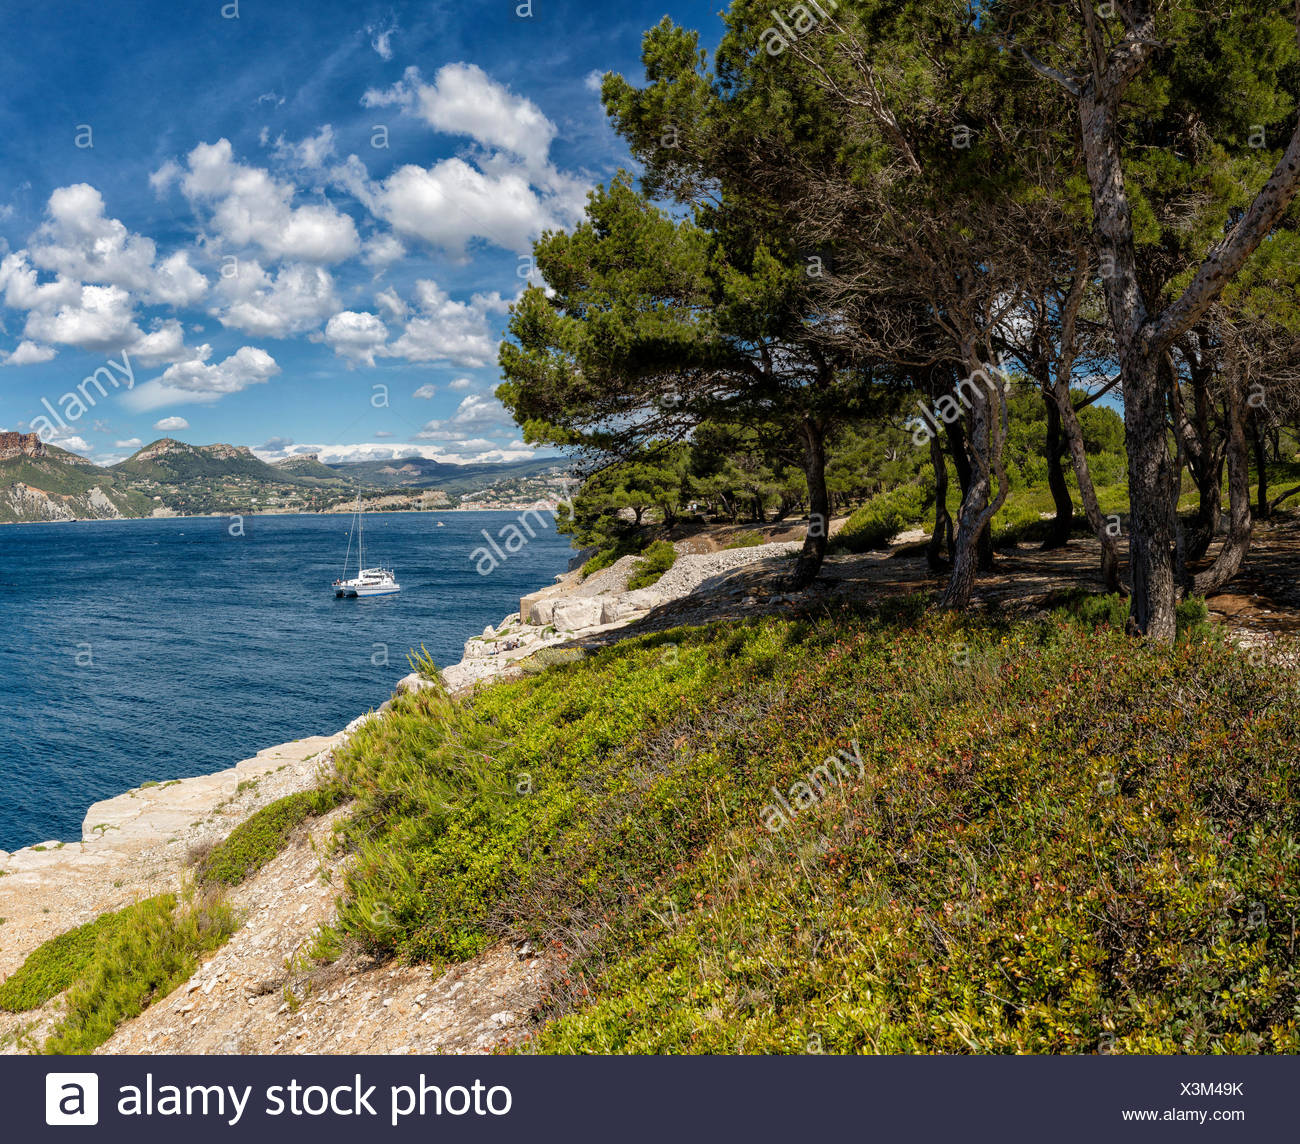 View, Cap de Bon voyage, landscape, water, trees, spring, mountains, sea, ships, boat, Cassis, Bouches du Rhone, France, Europe, - Stock Image